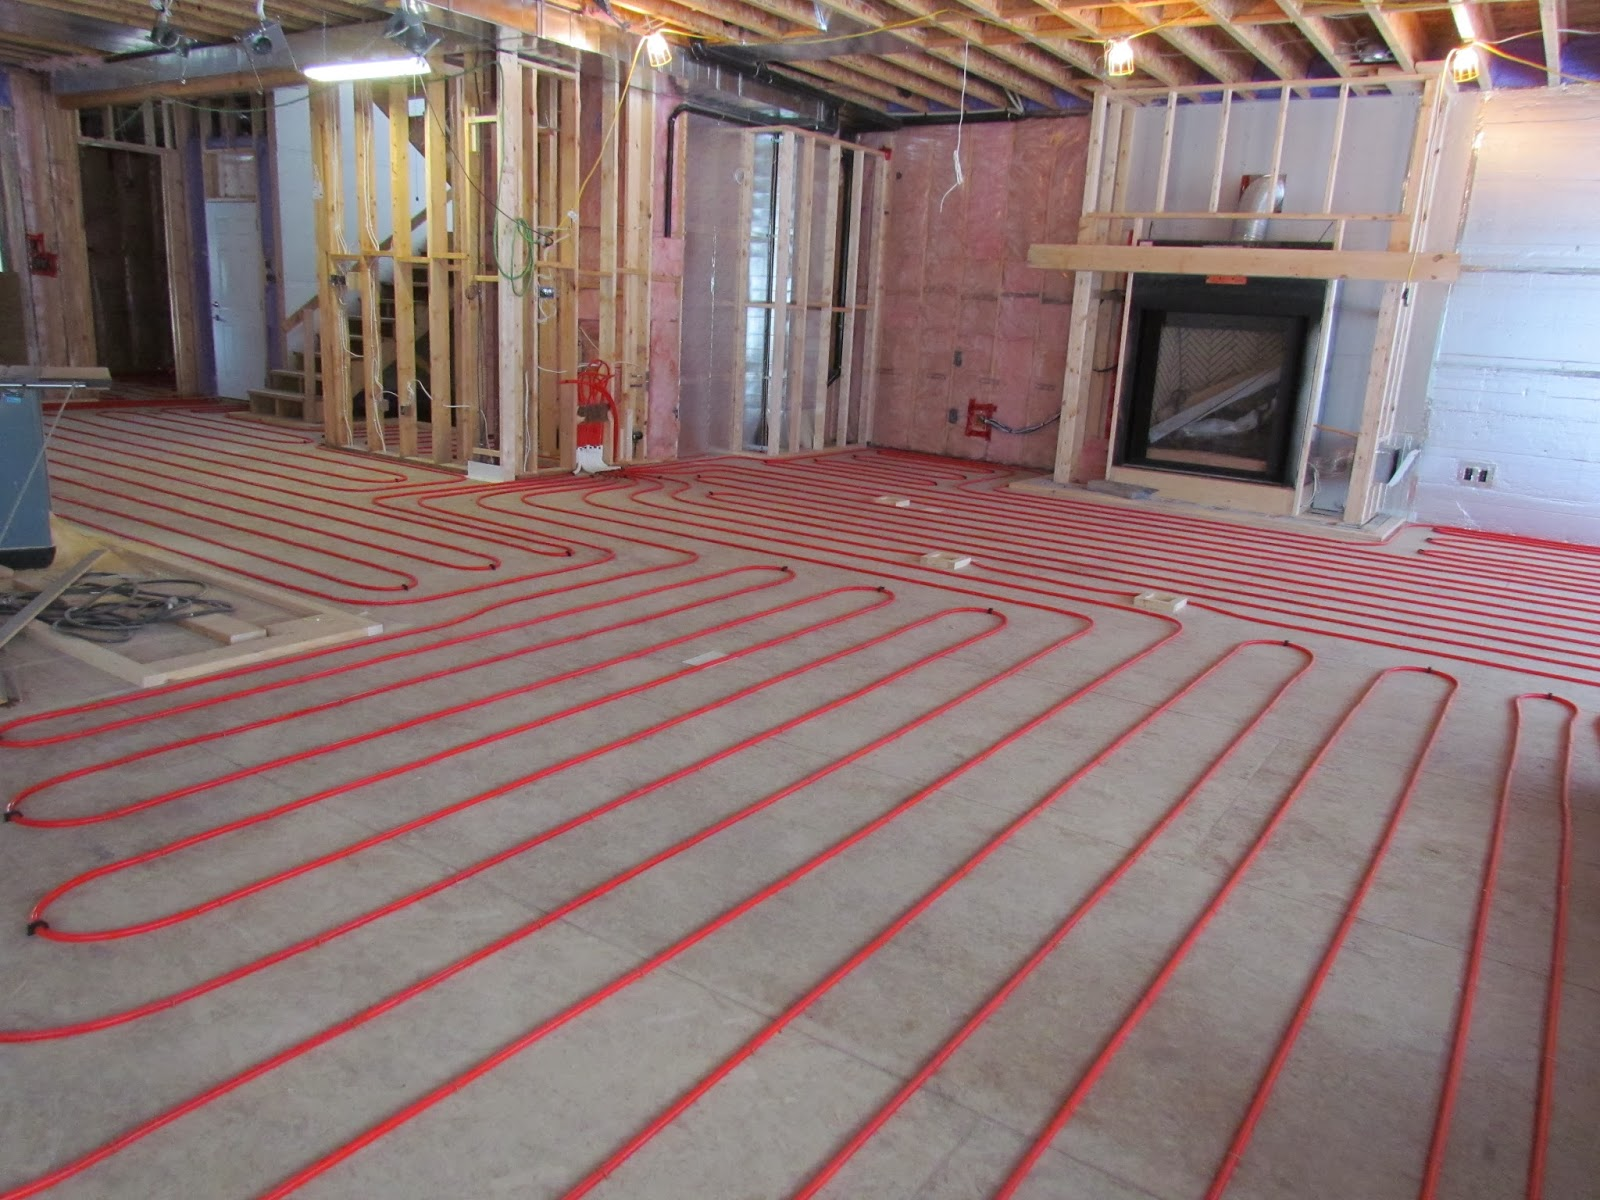 Ask Rob Radiant InFloor heating in the basement